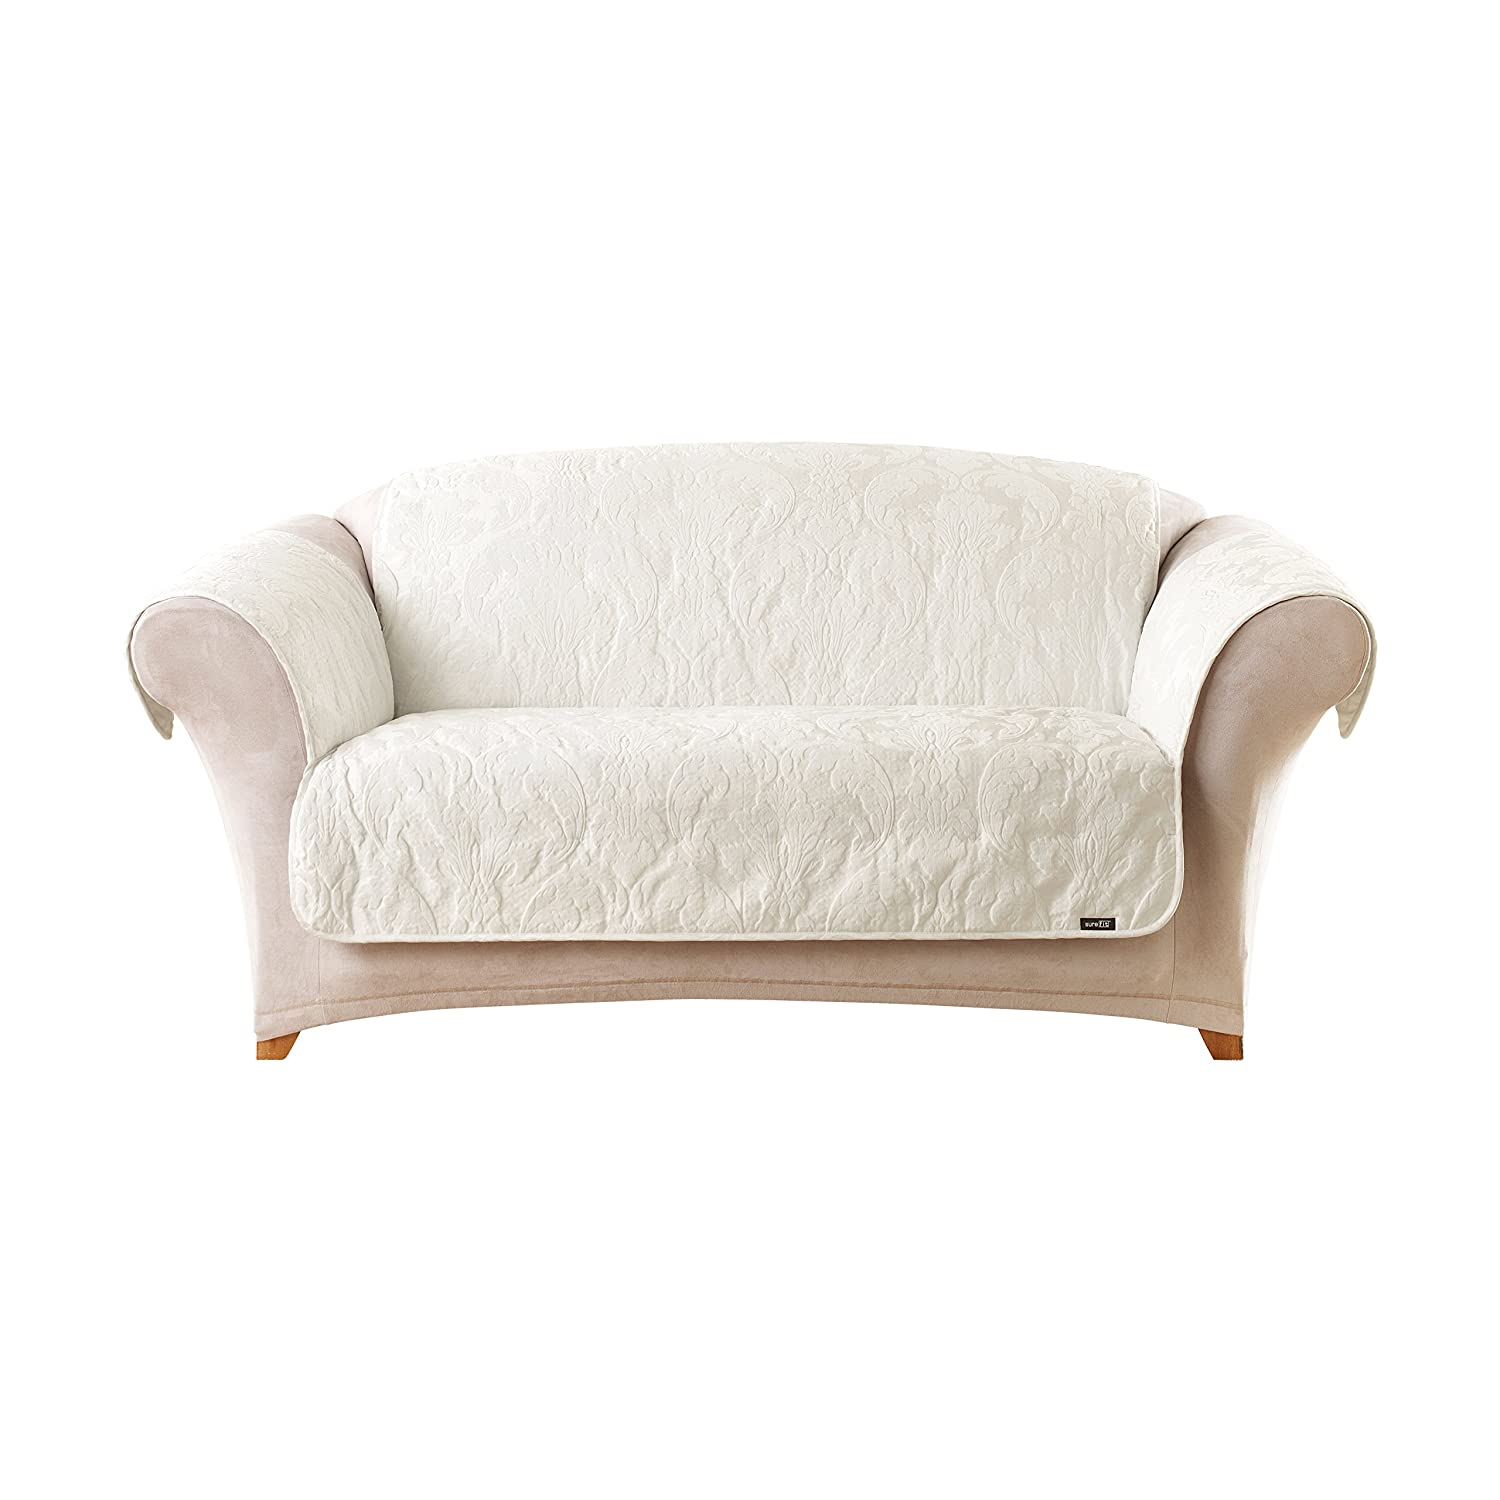 Amazon.com: Sure Fit Matelasse Damask   Loveseat Slipcover   White  (SF41413): Home U0026 Kitchen